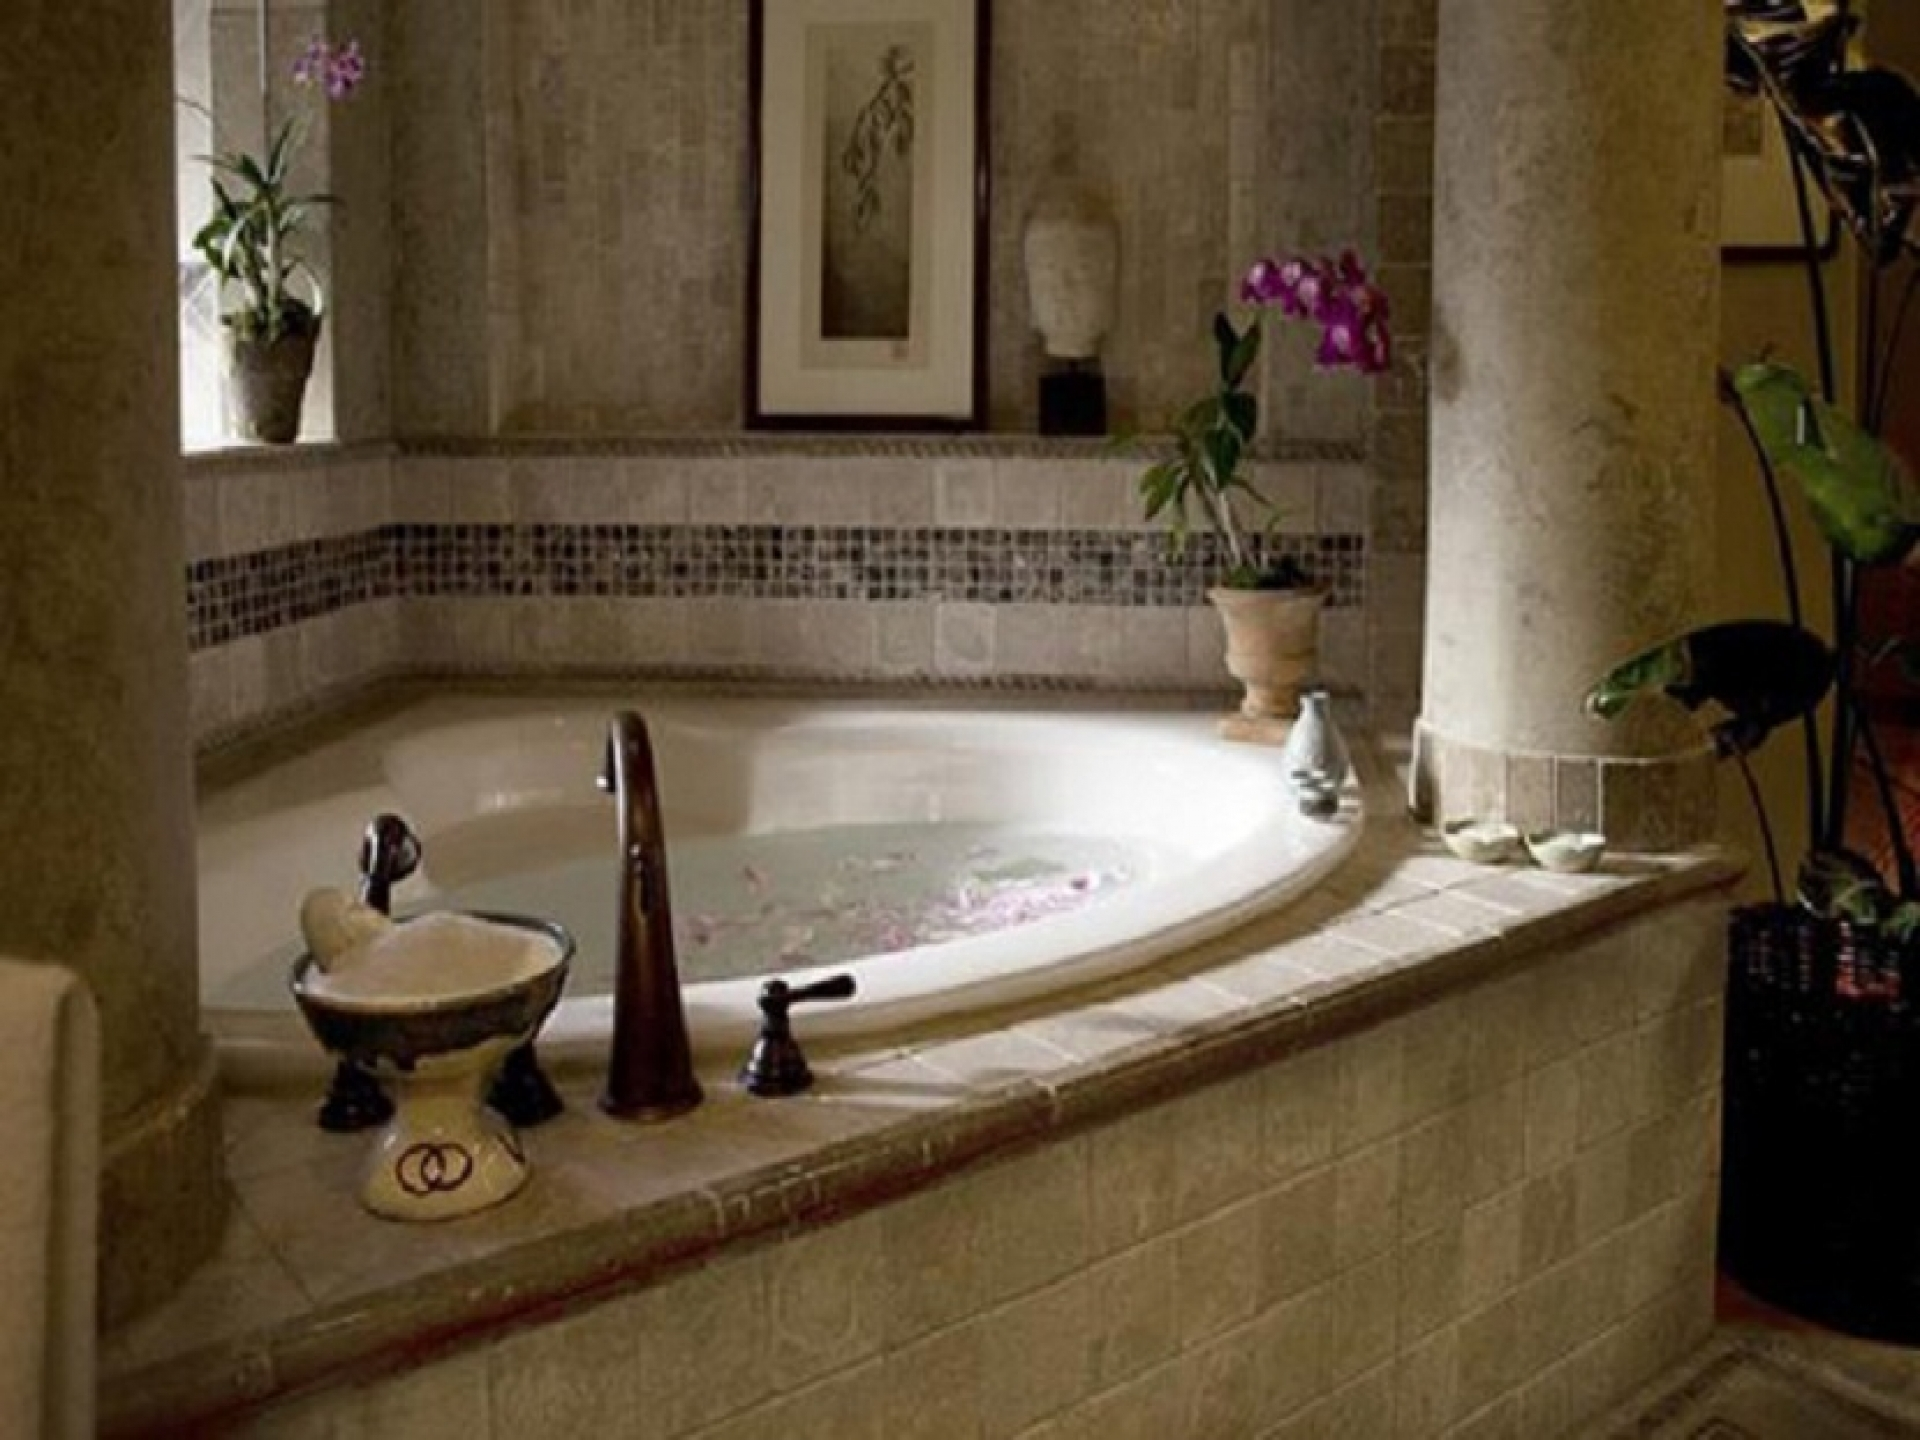 15 Best Images About Corner Tubs On Pinterest | Stand Up Showers With  Regard To Best